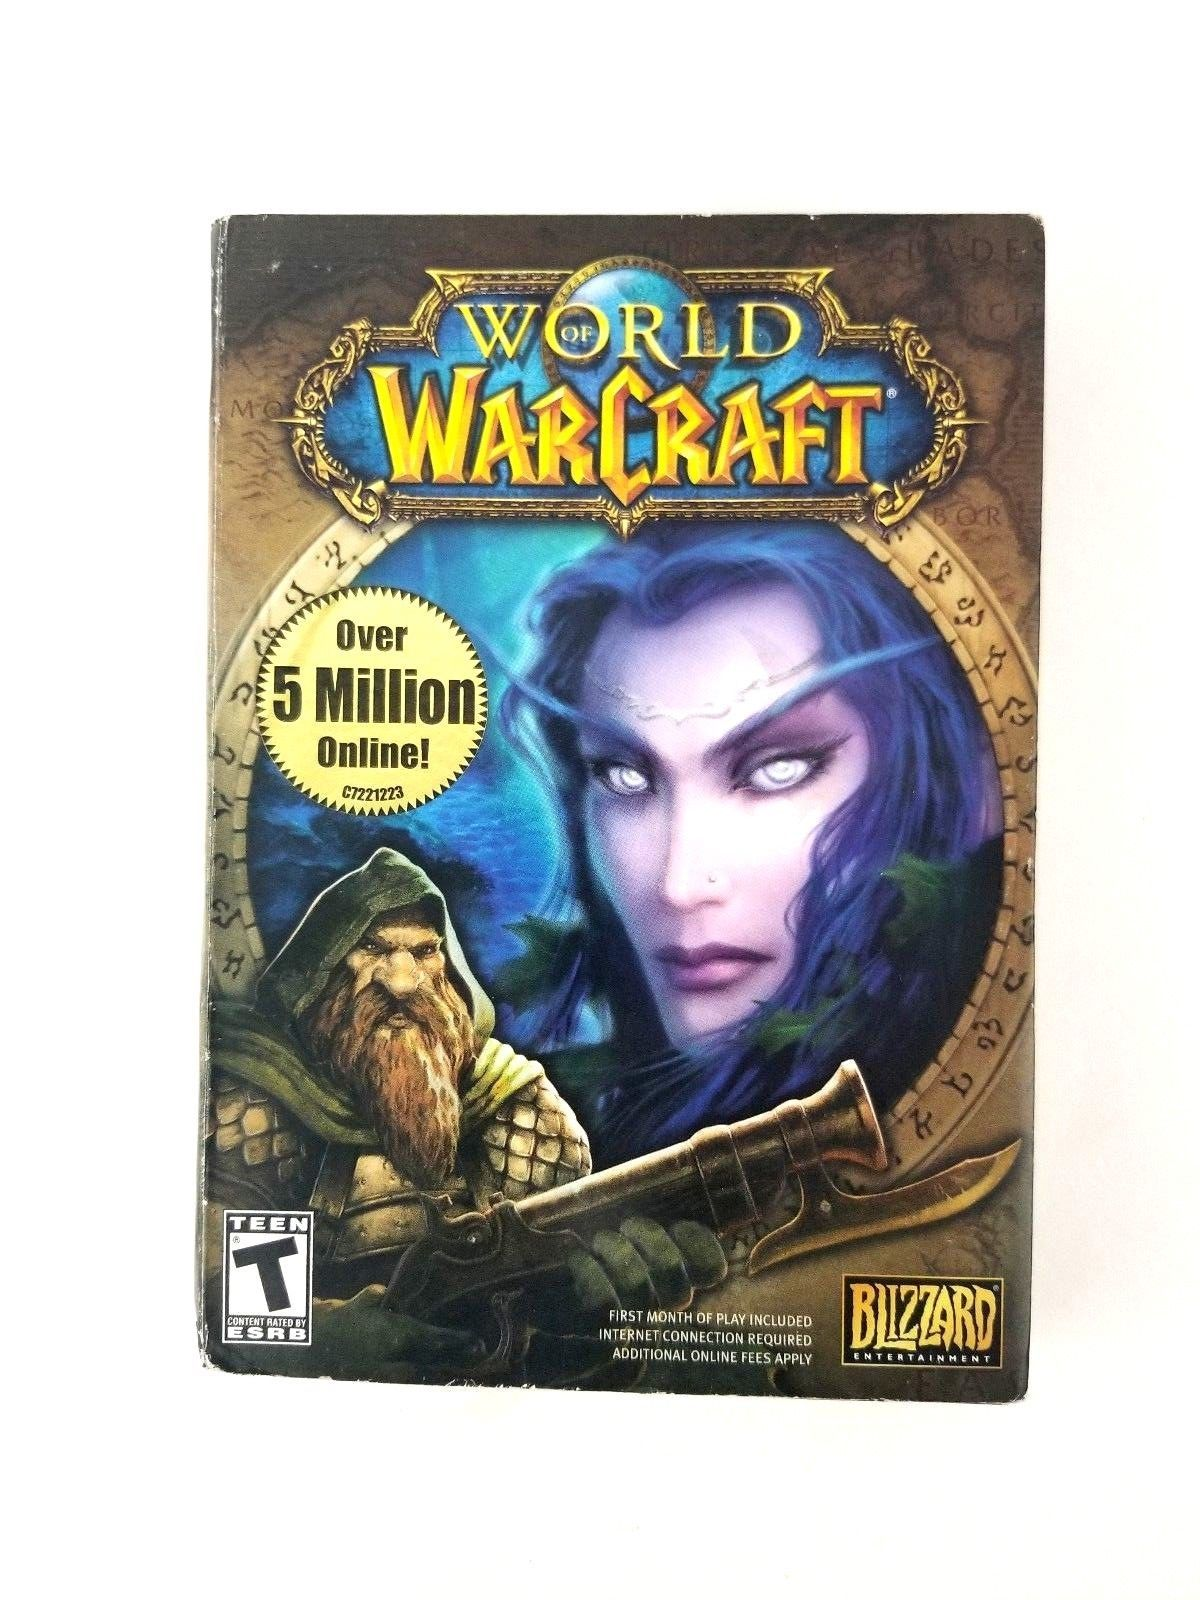 World of Warcraft PC Game for Windows 2000 XP & Mac Blizzard Entertainment New